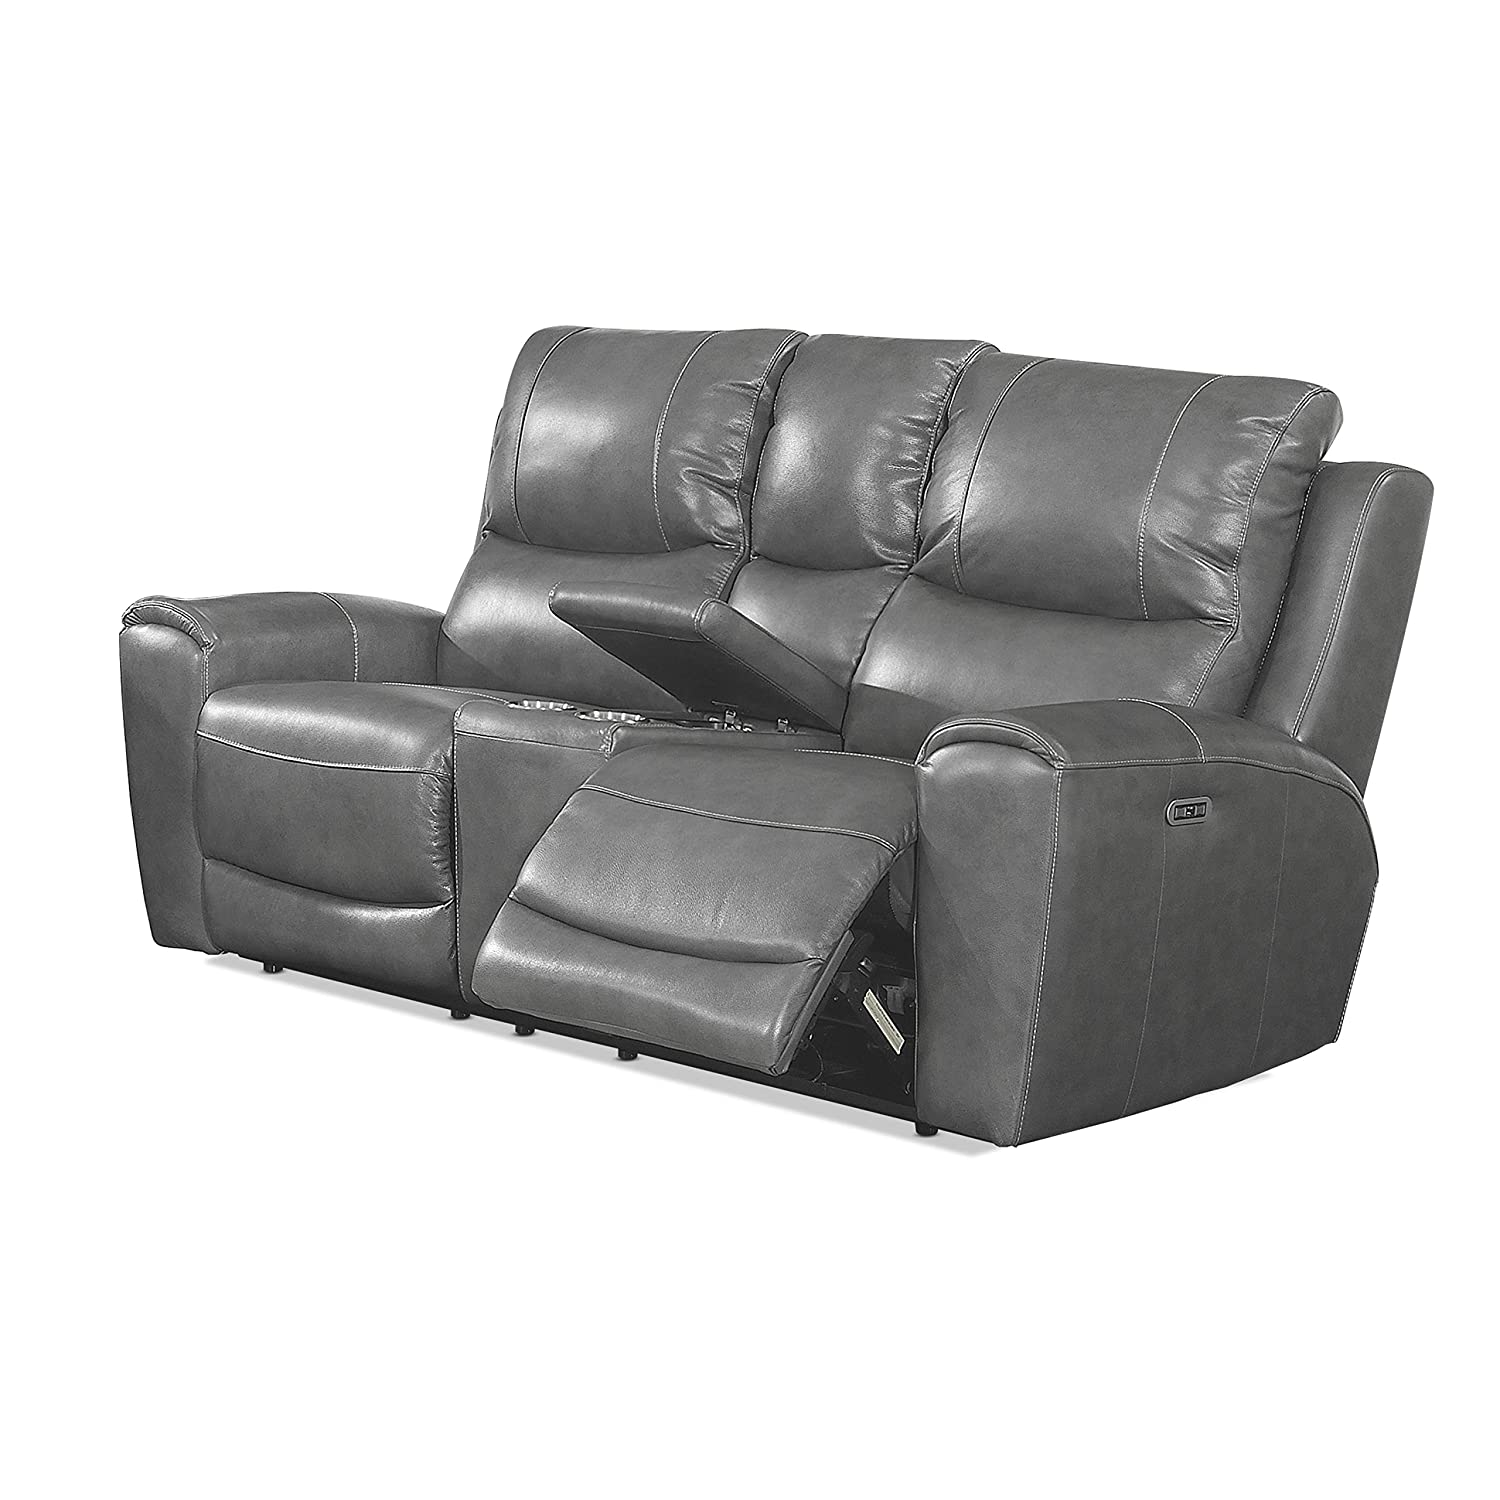 Amazon.com: Steve Laurel LL950CLG - Consola reclinable ...